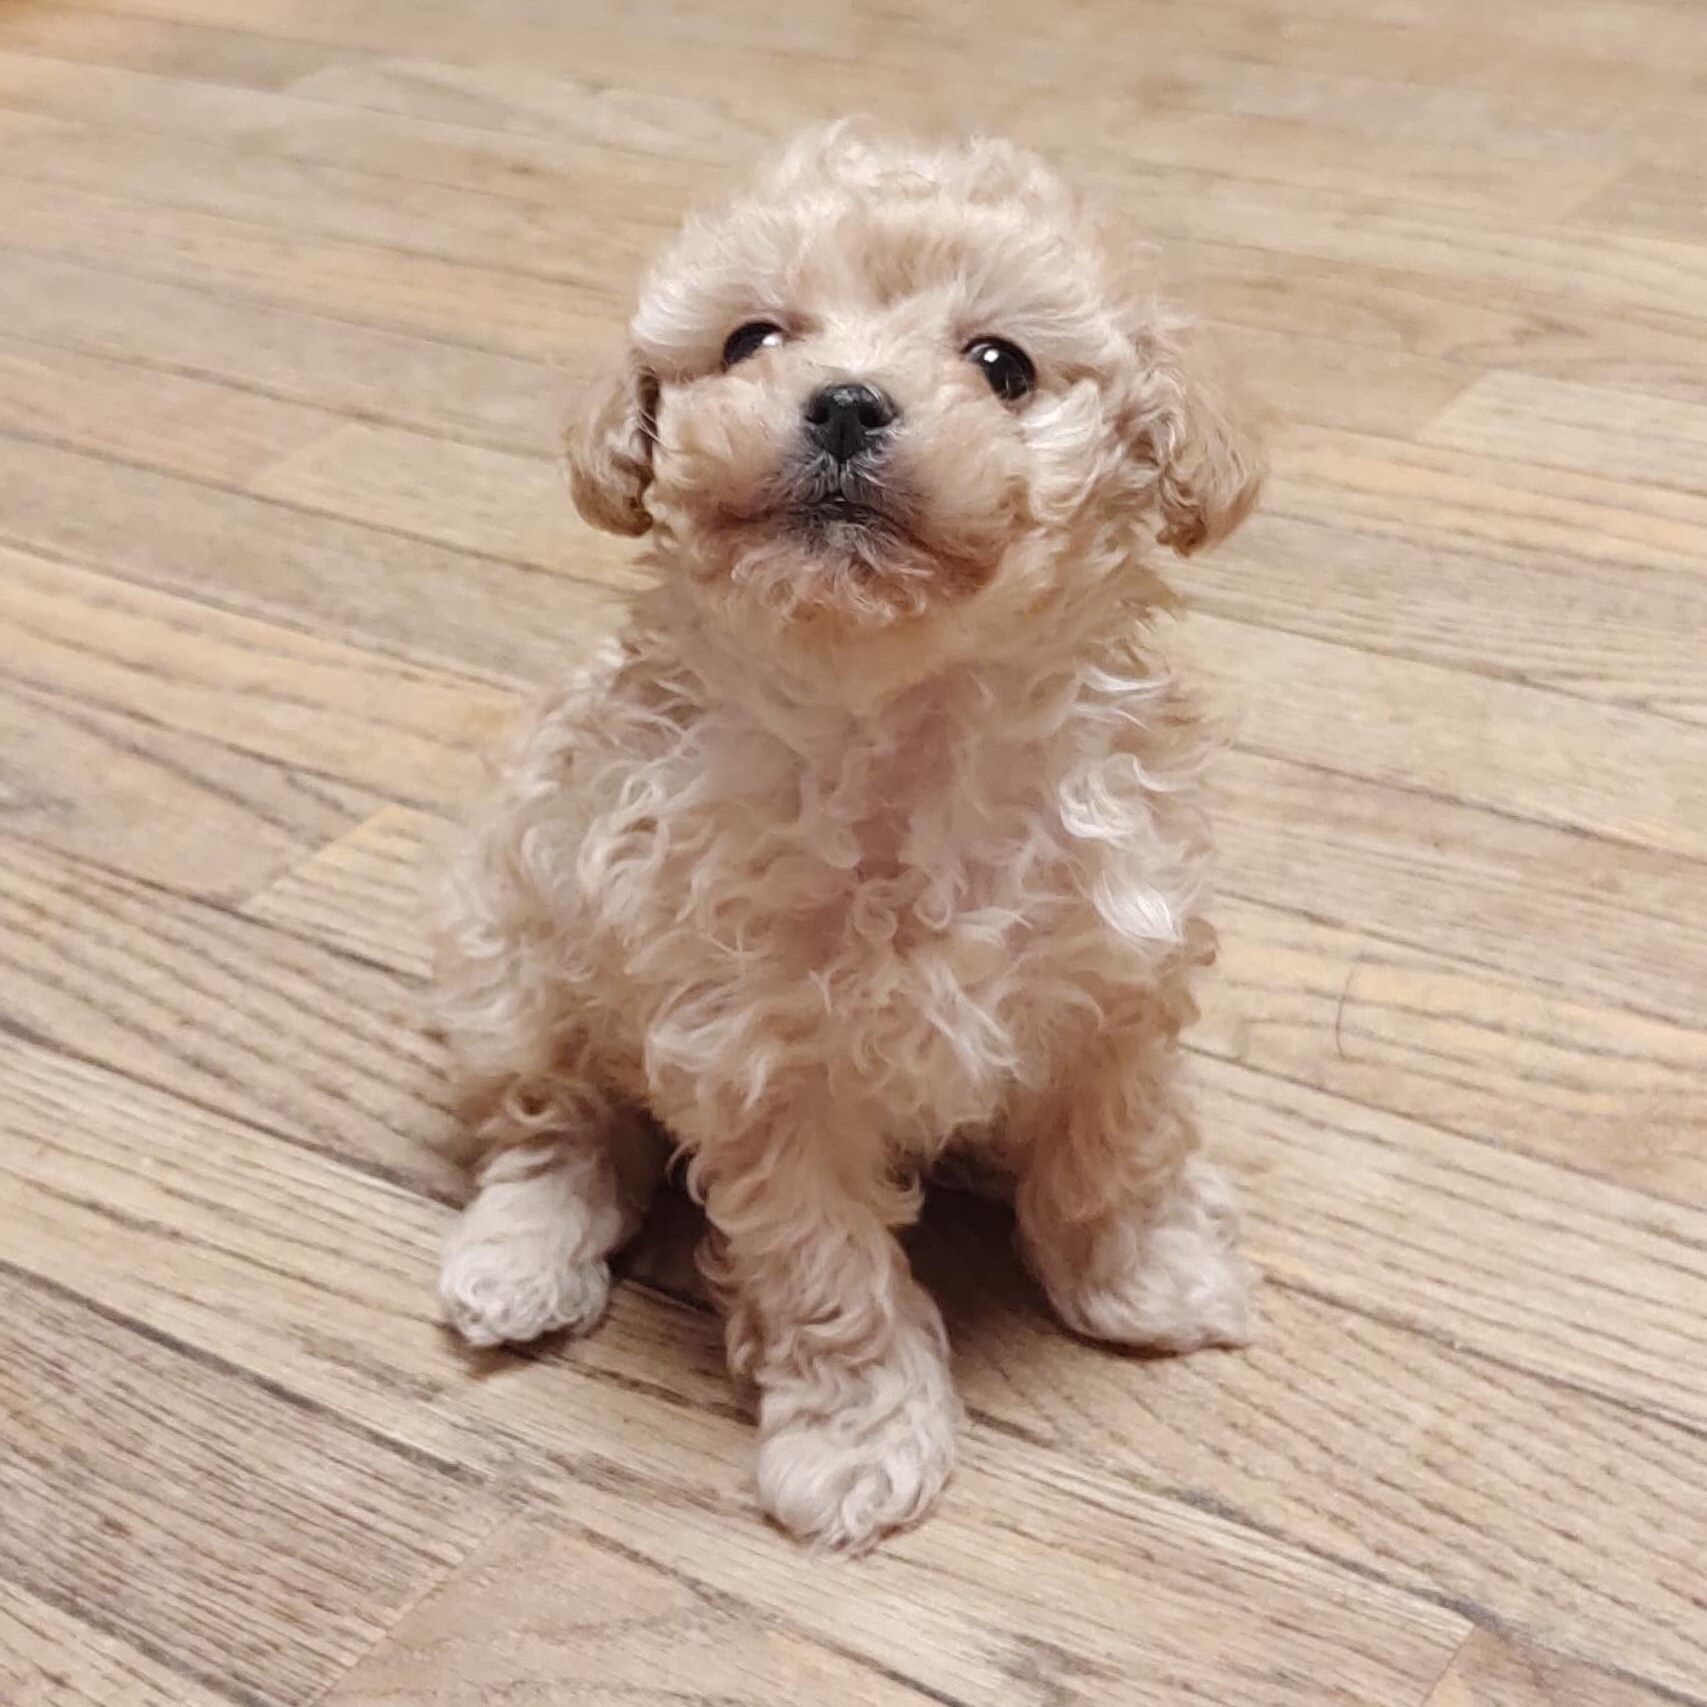 Famale Toy Apricot Poodle